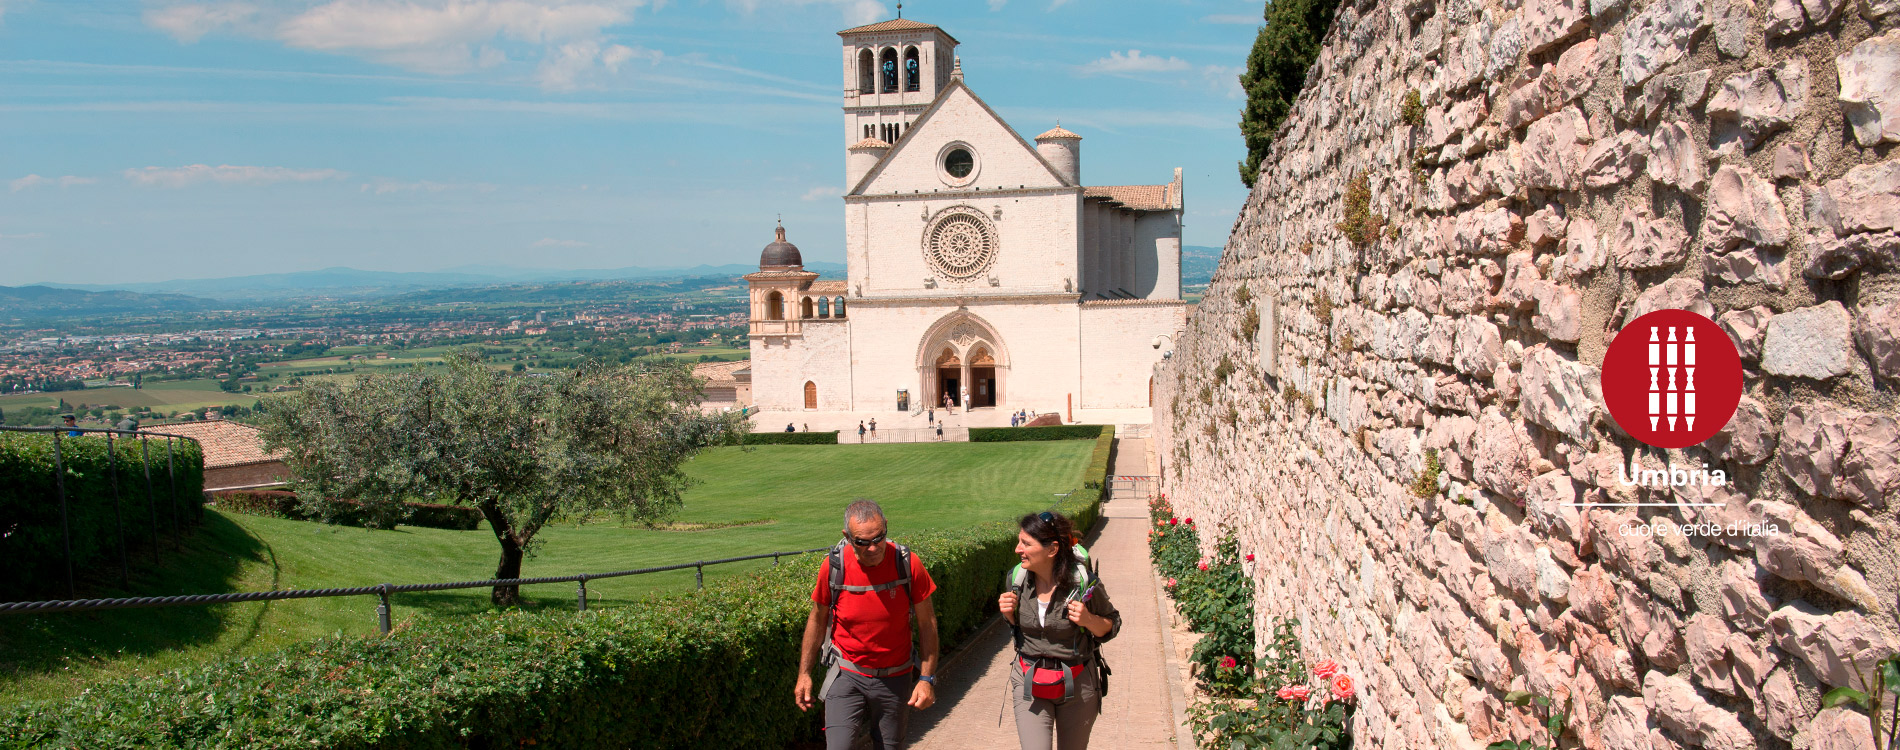 pilgrimage and meditation between valfabbrica and assisi with the bike